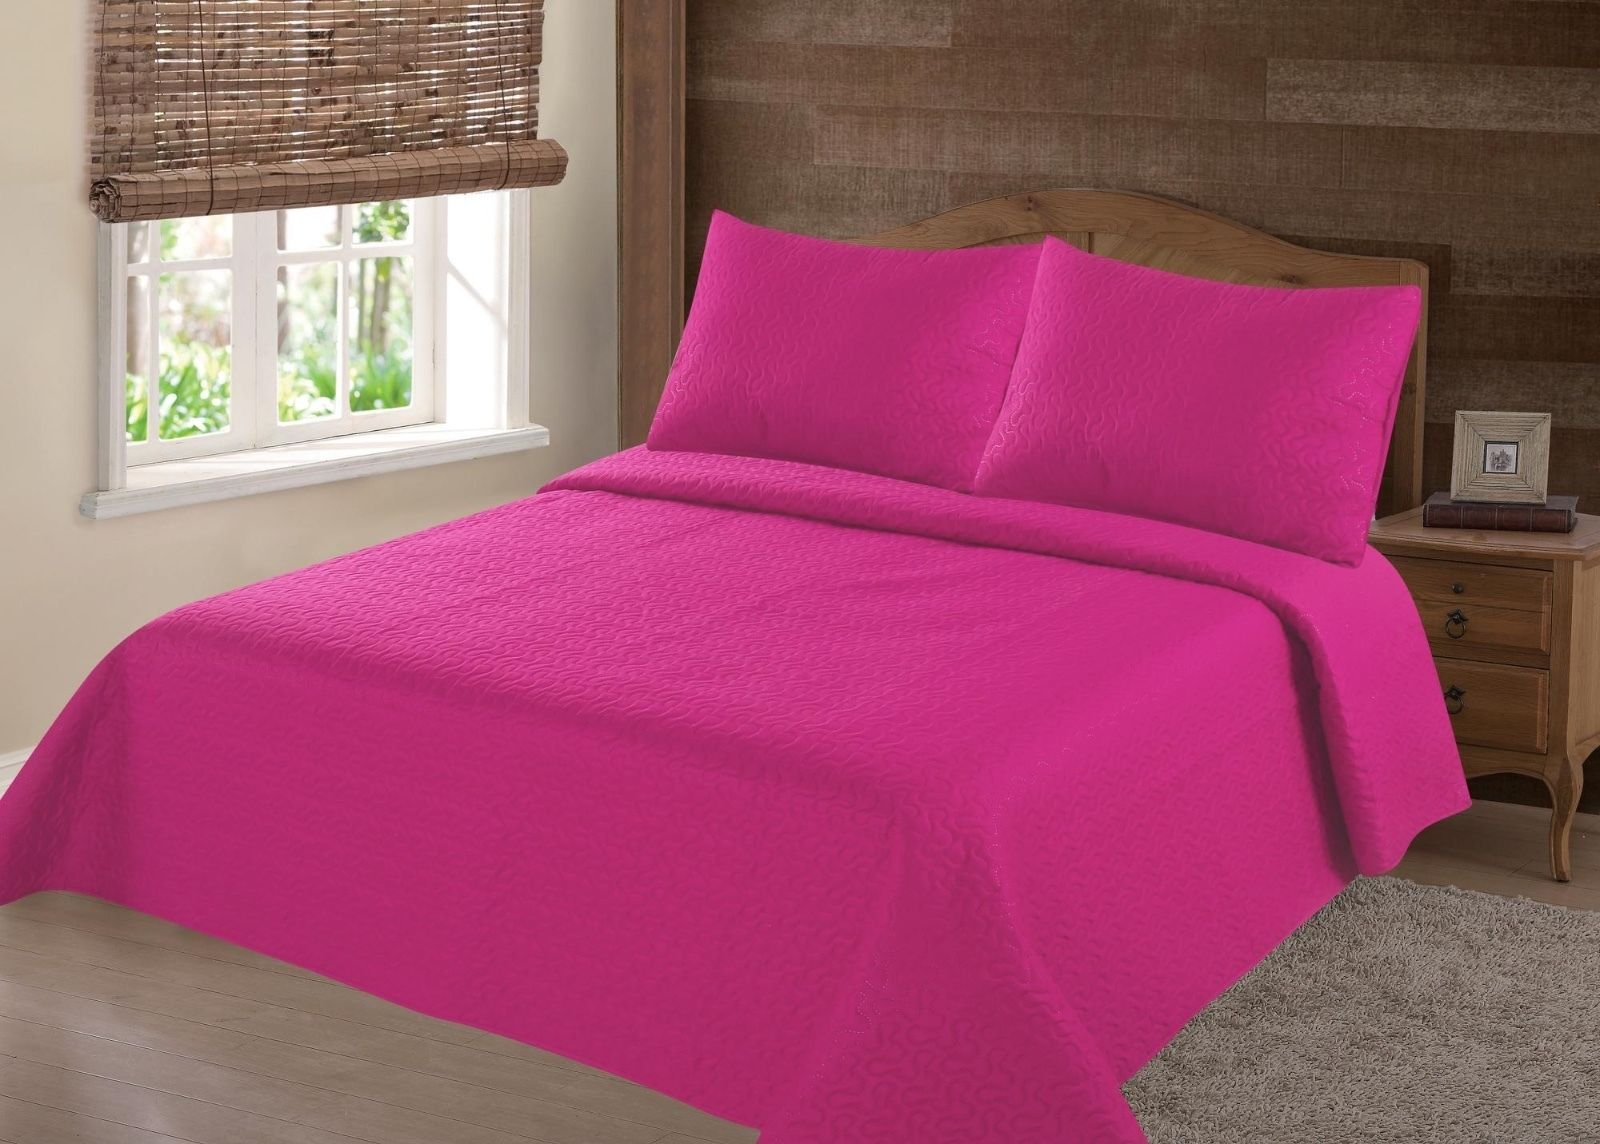 GorgeousHomeLinen (NENA) Hot Pink Fuchsia Solid Hypoallergenic Quilt Bedspread Bed Bedding Coverlets Cover Set with Pillow Cases Size inc: Twin (2pc) Full Queen King (3pc) (Queen)